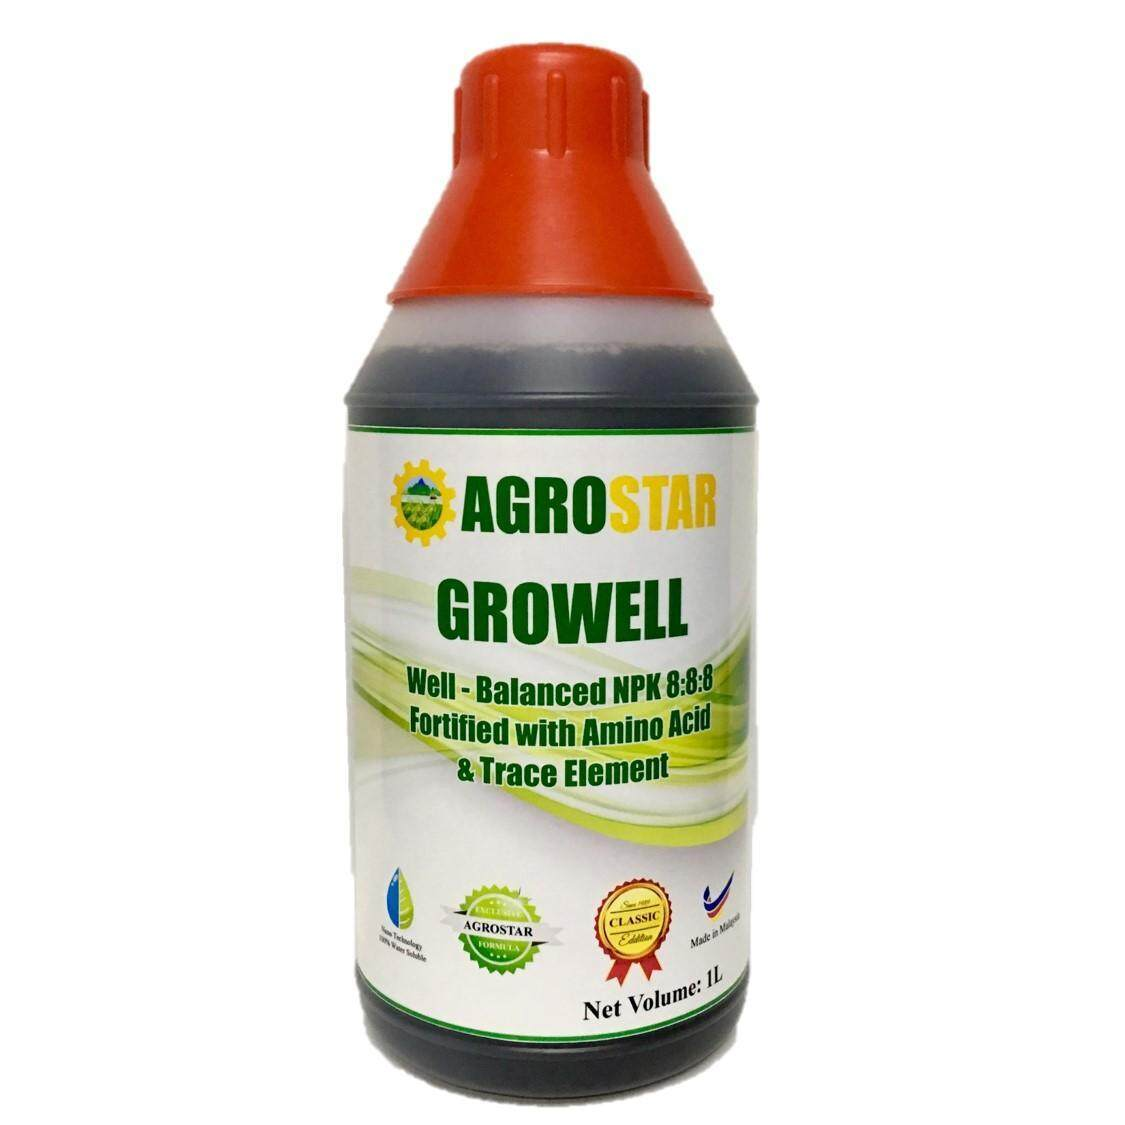 Growell - Well Balanced NPK 8/8/8 Fortified with N P K, Amino Acid and trace element Liquid Fertilizer (Agrostar Brand) for Vegetables, Fruits & All ornamentals especially young developing plants  1L (Black)